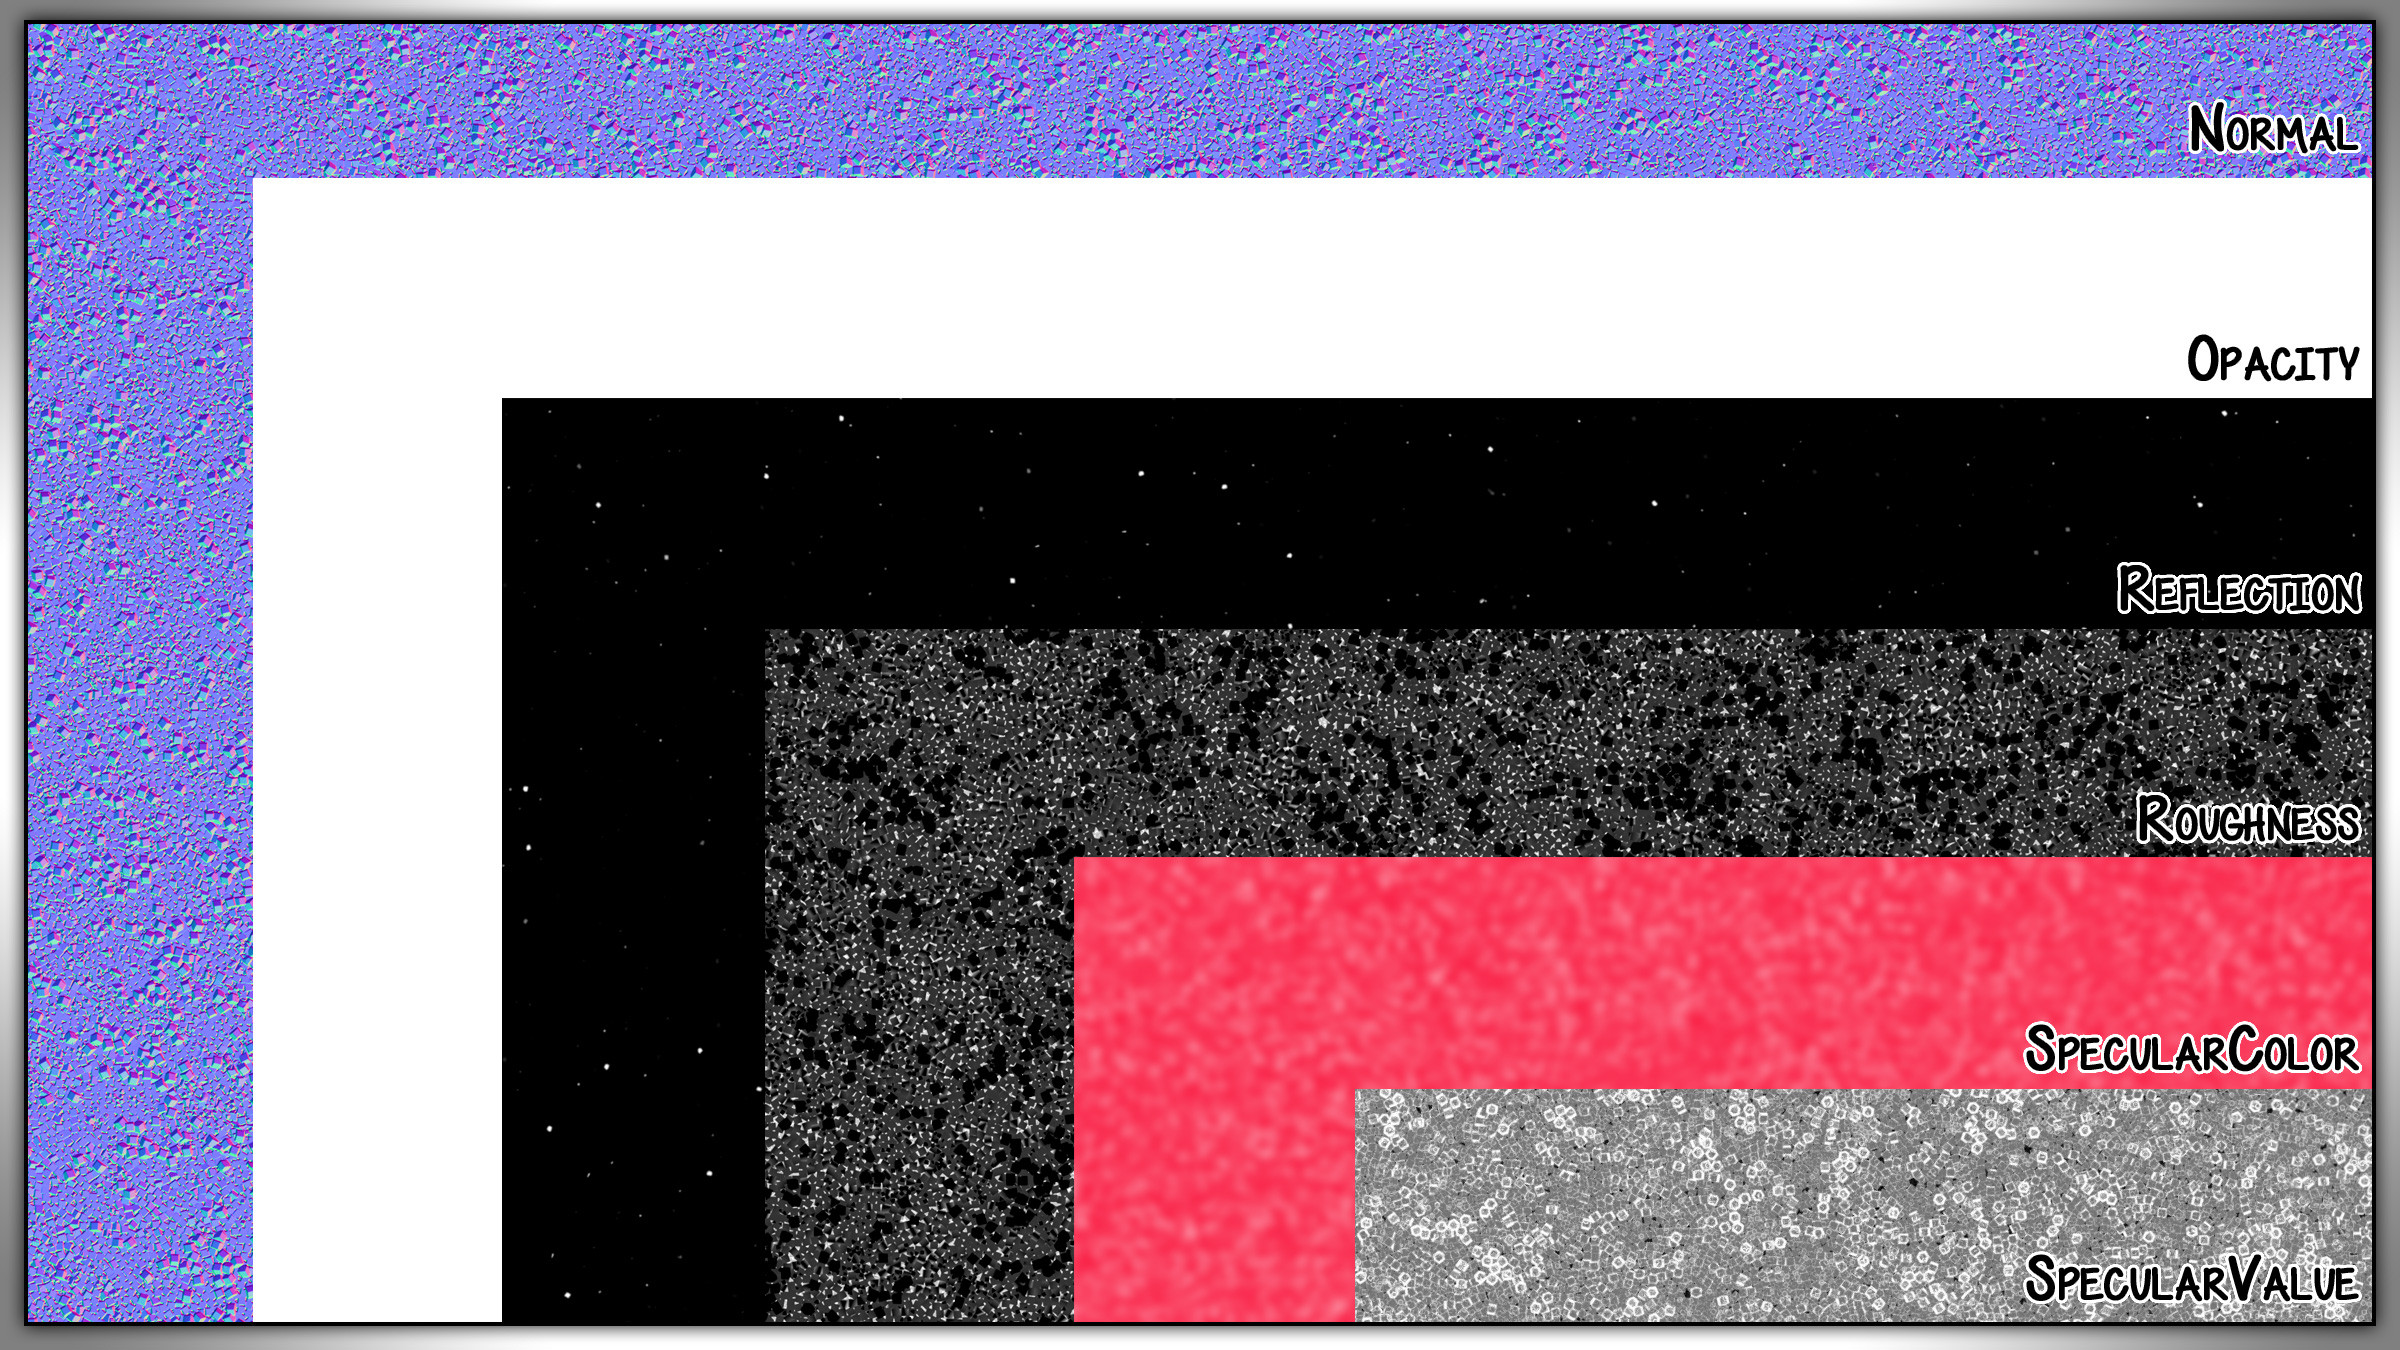 The resulting layers in half resolution.